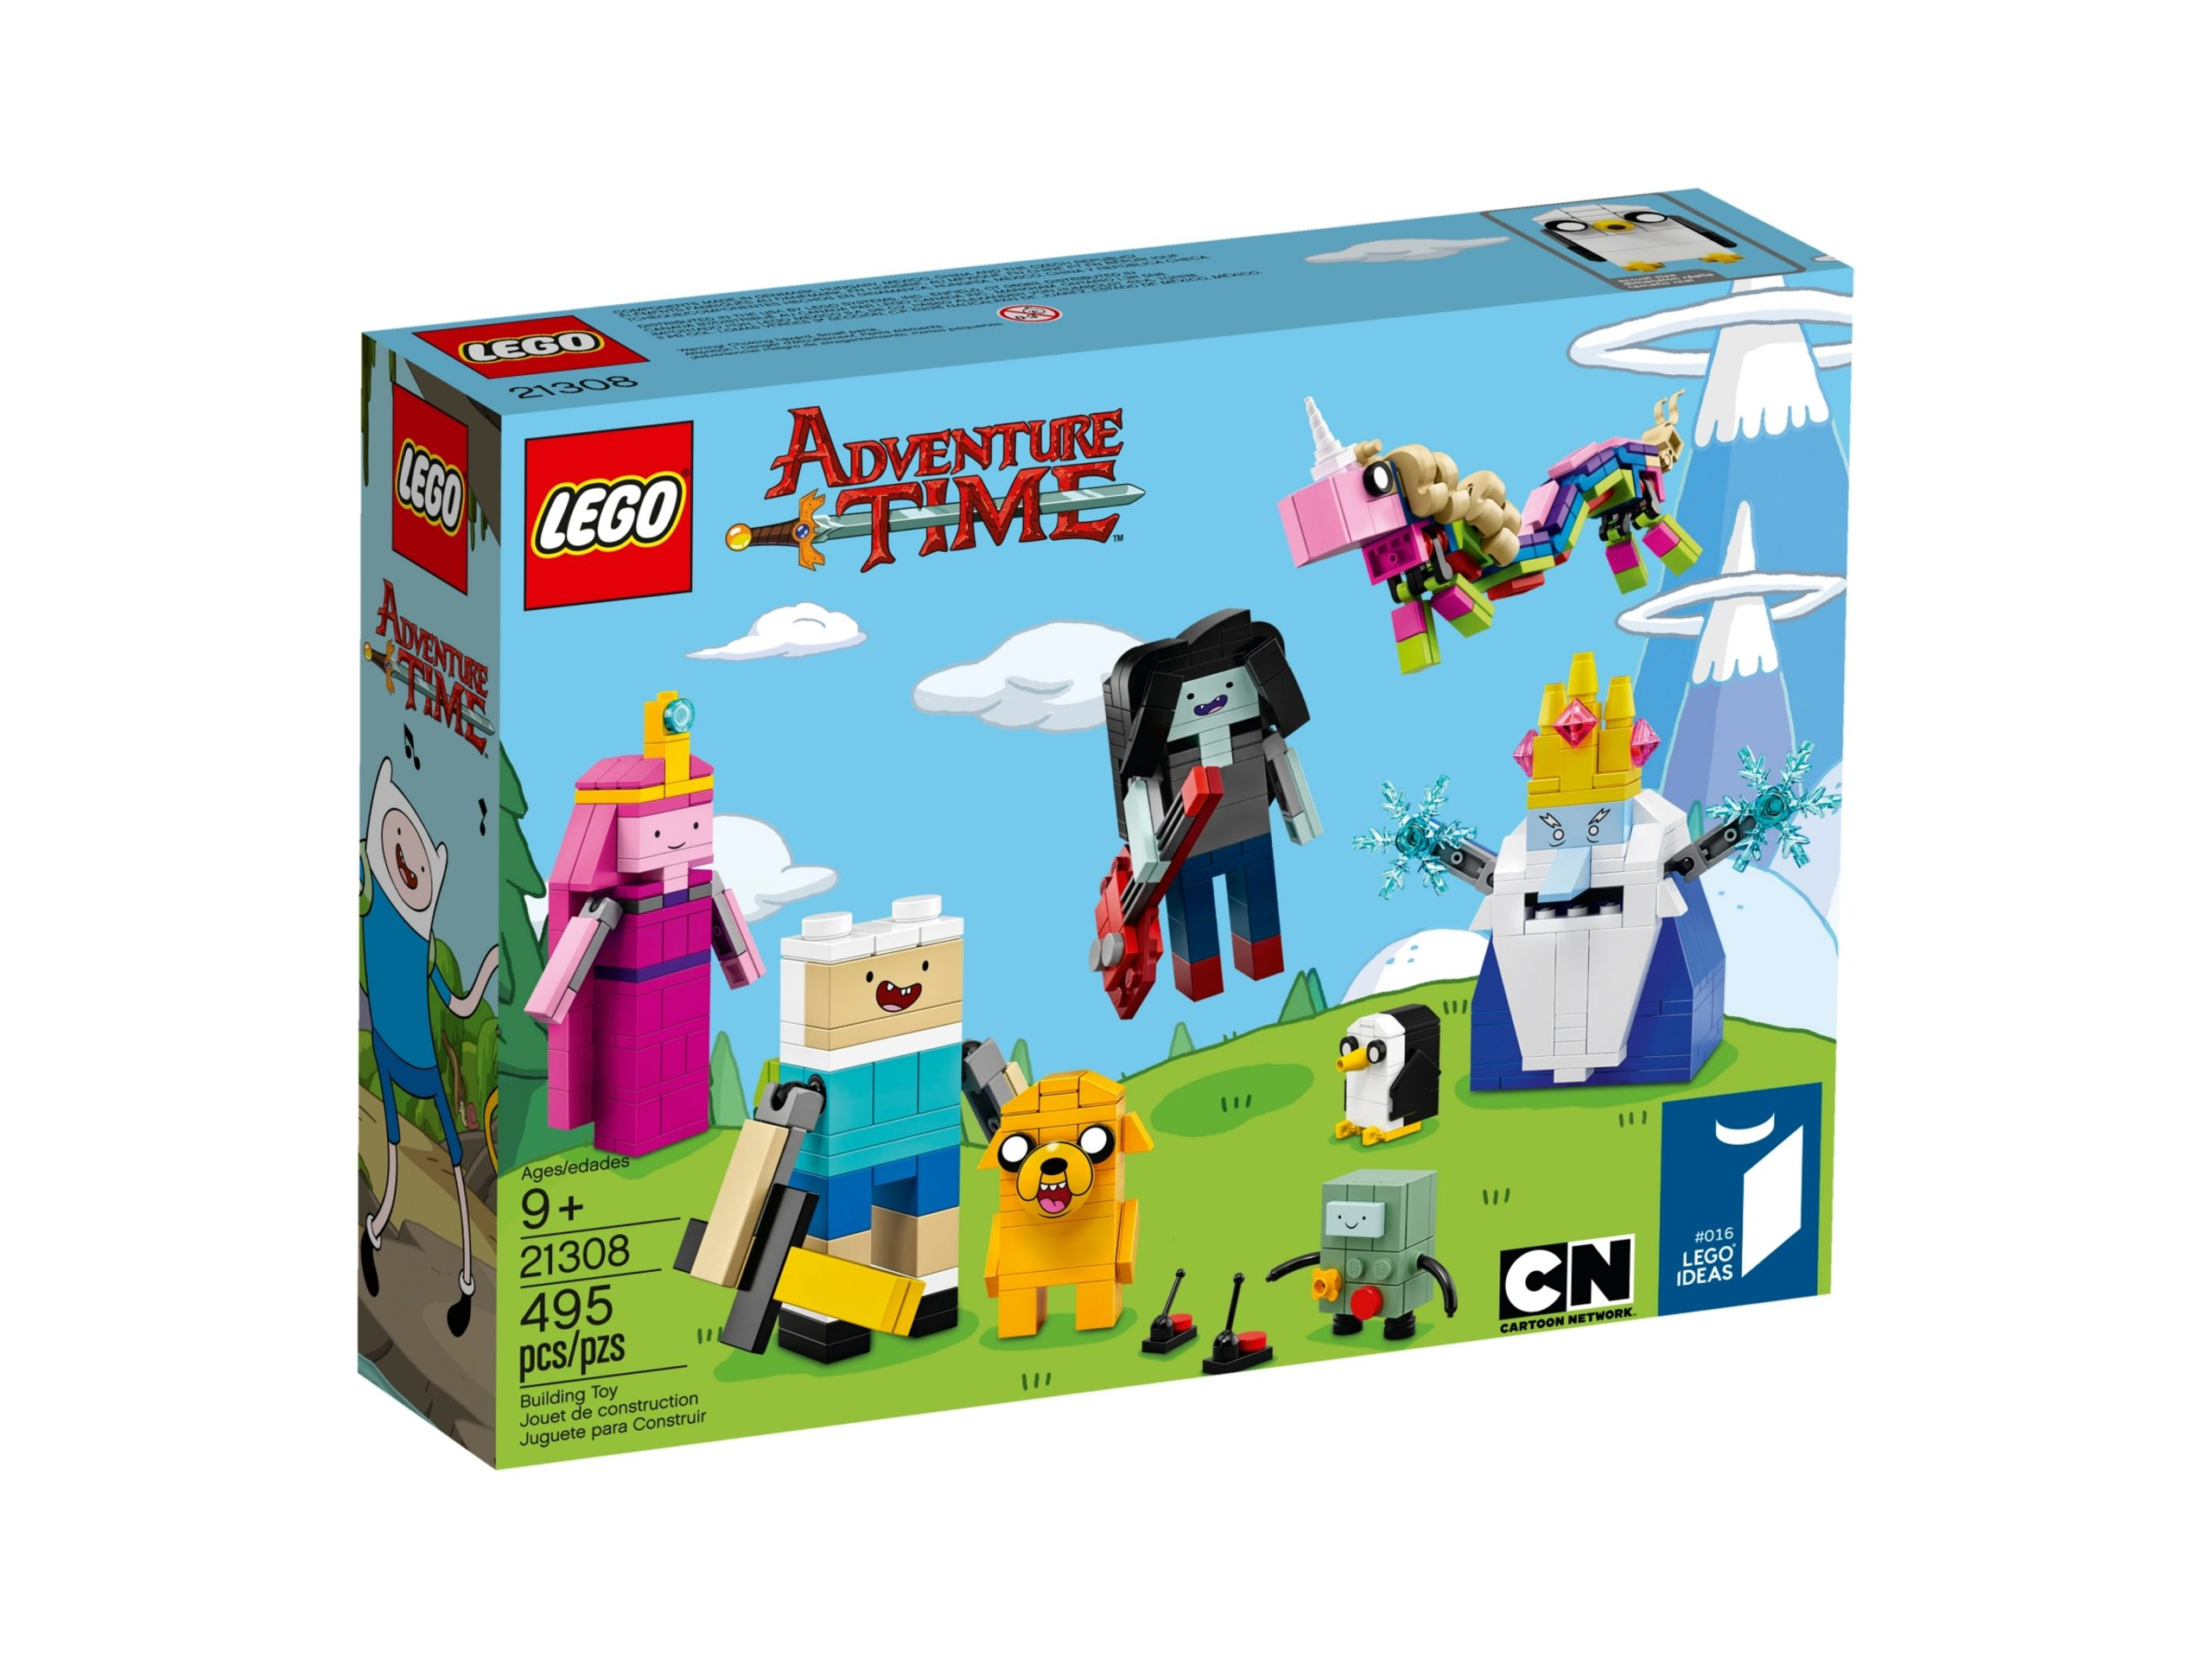 lego 21308 adventure time scaled